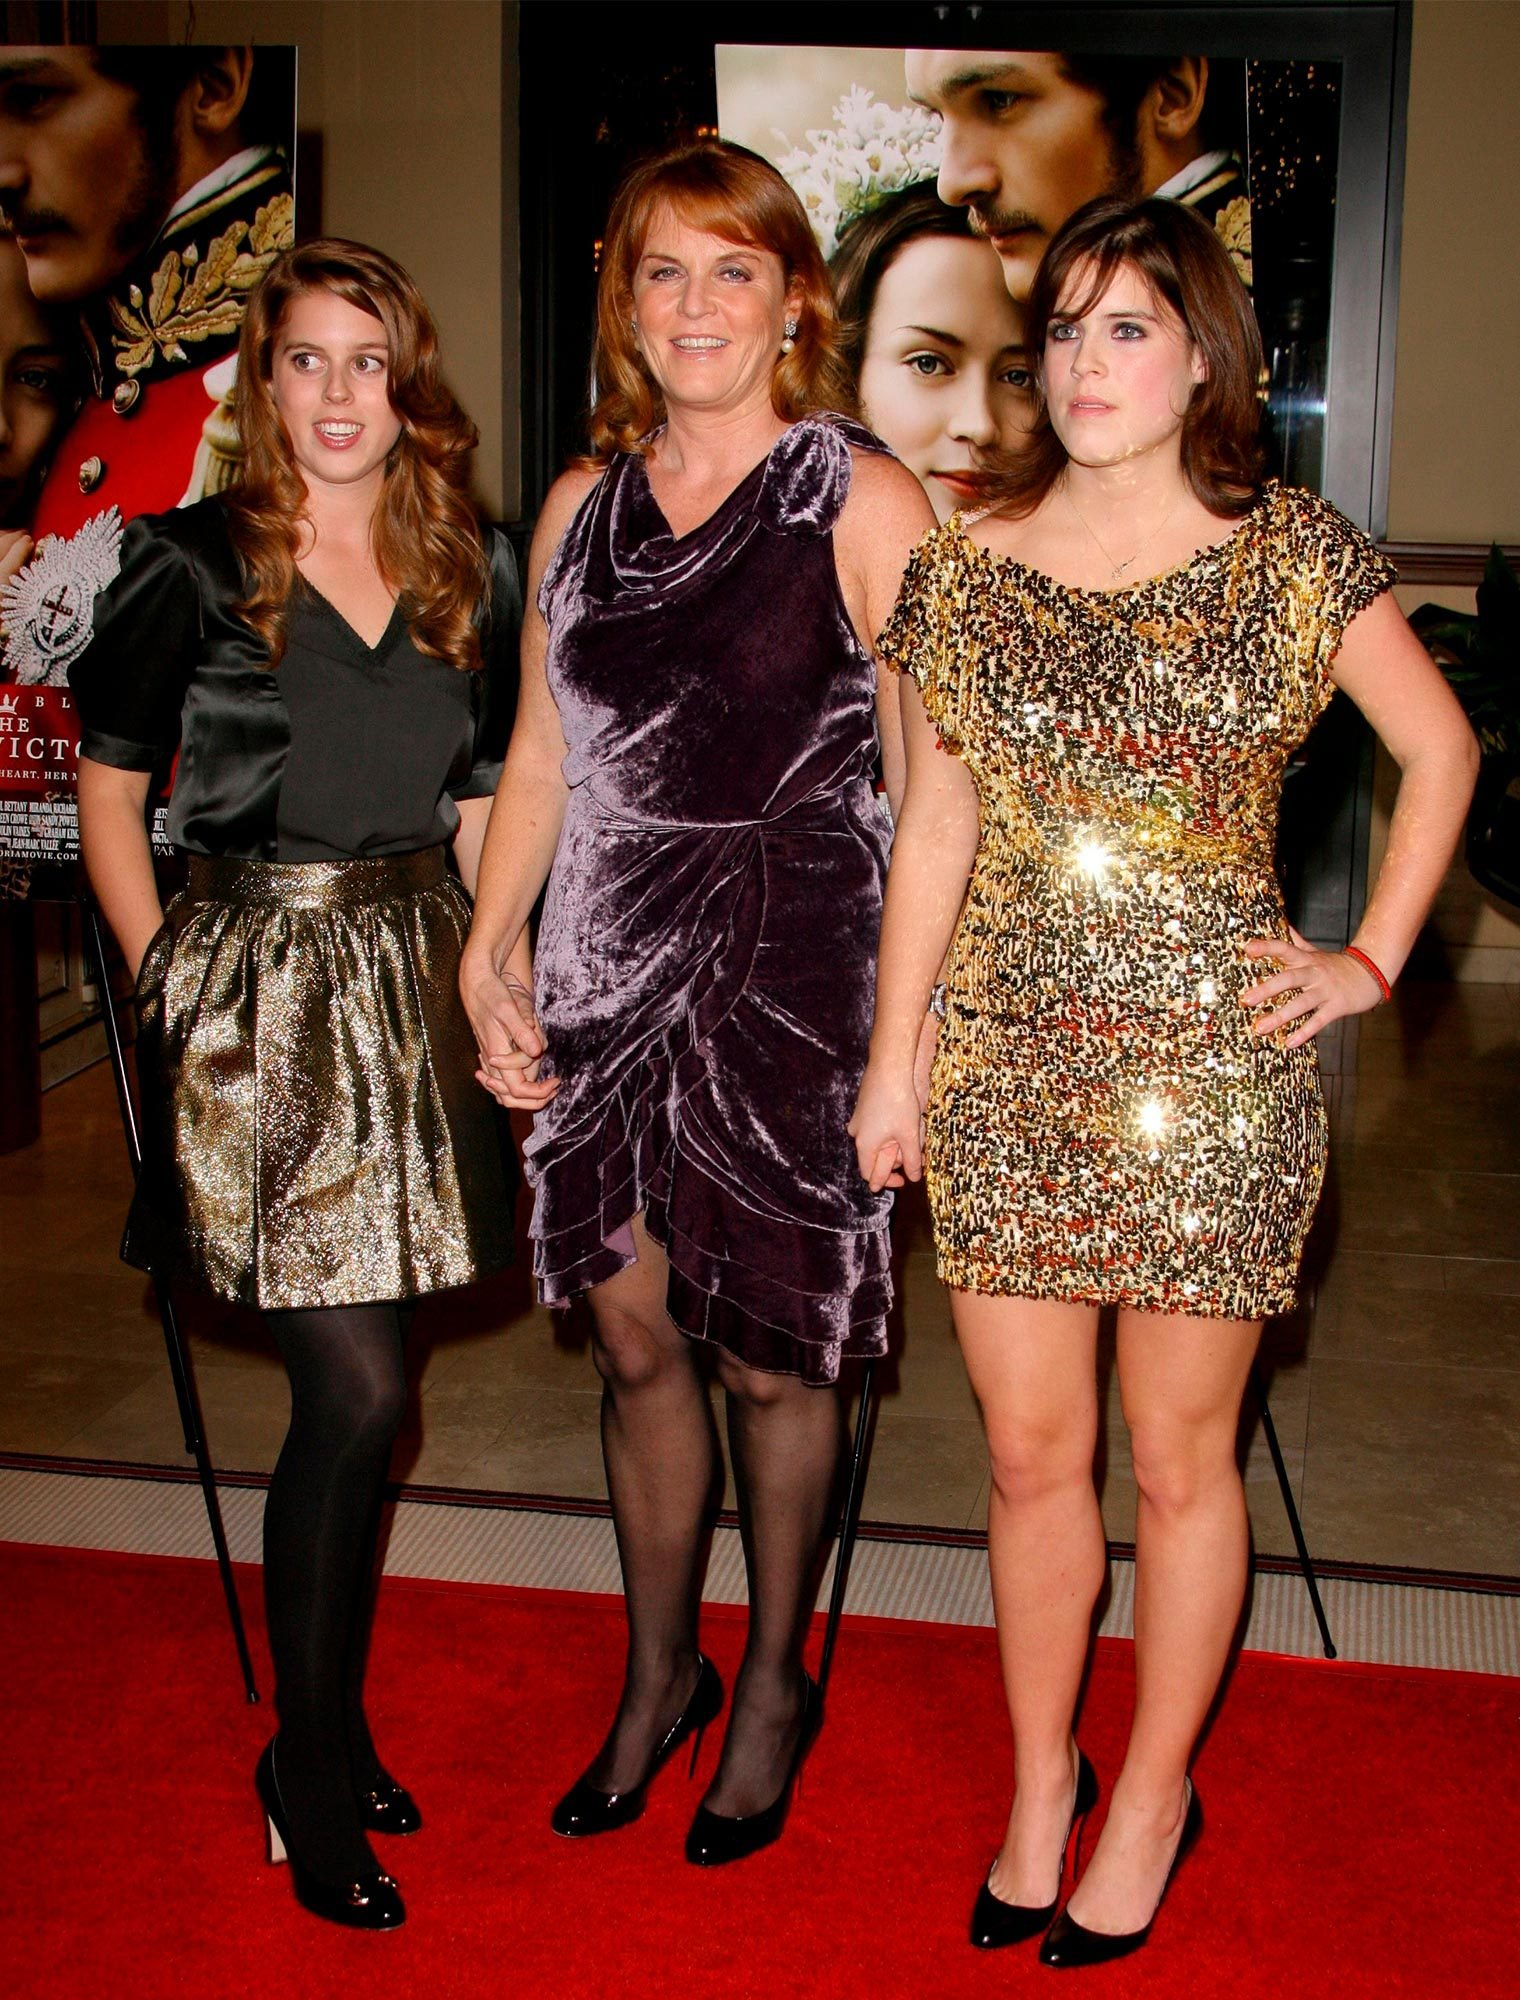 Princess Beatrice 'The Young Victoria' Film premiere